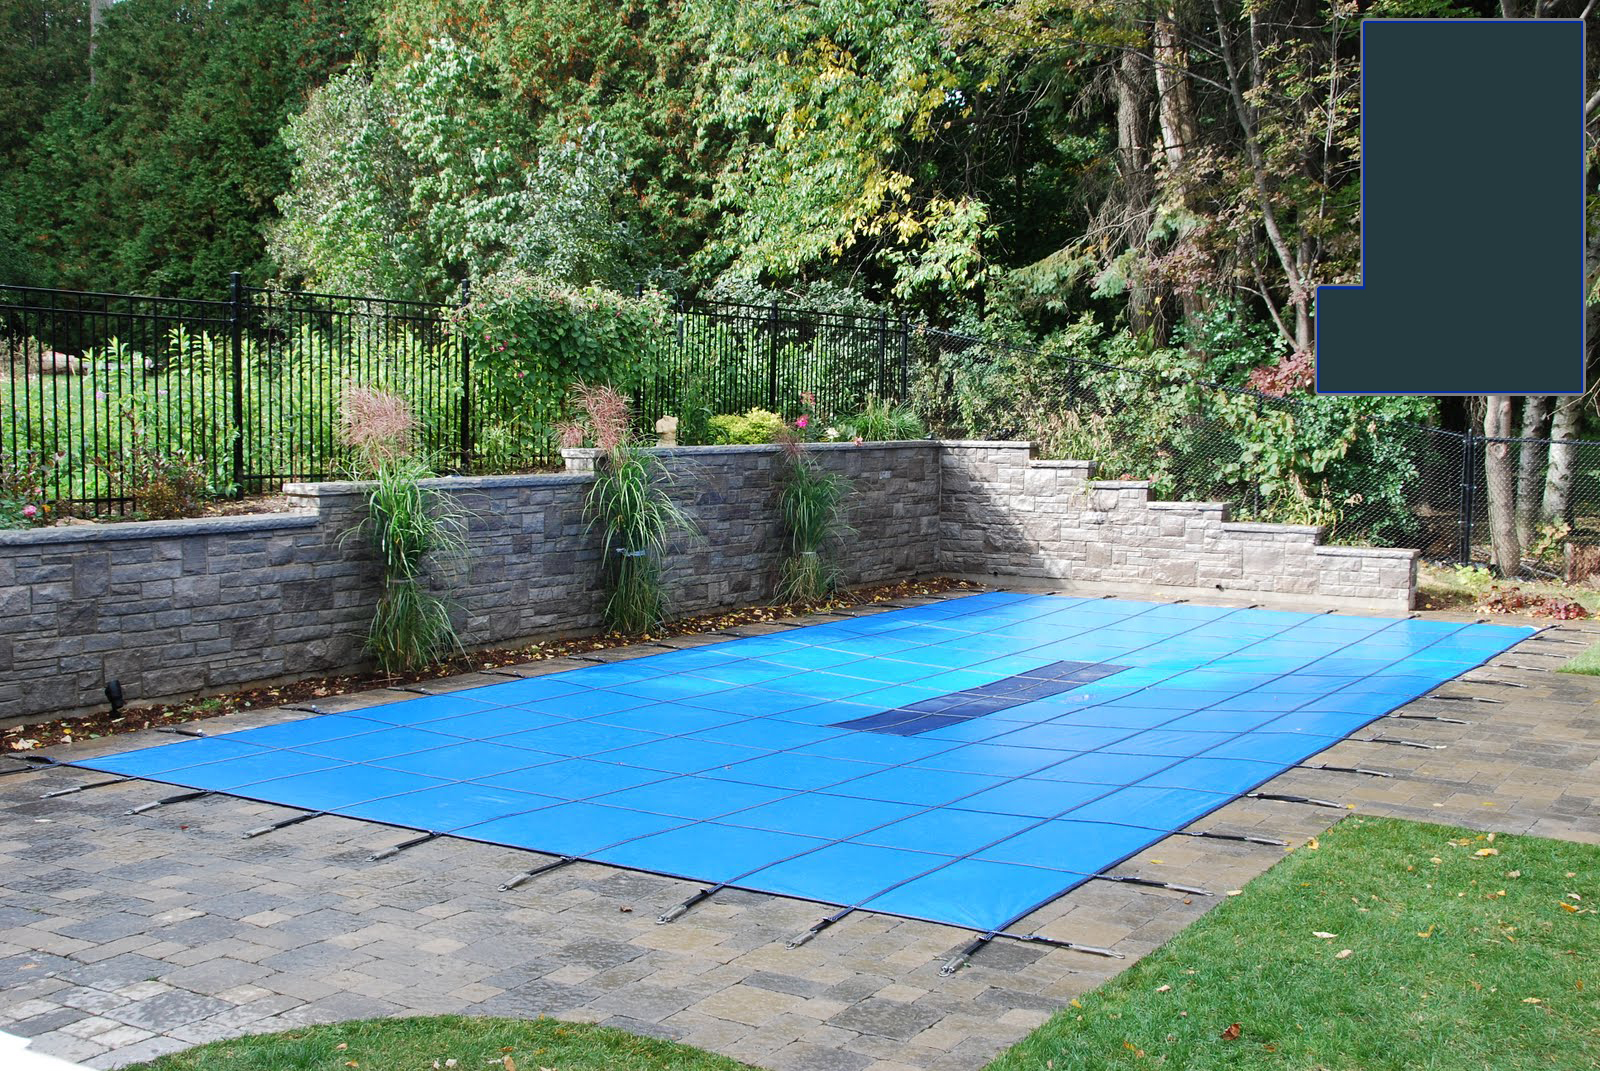 20 yr solid safety cover w drain for 20 39 x 40 39 rectangle Rectangle vs round pool